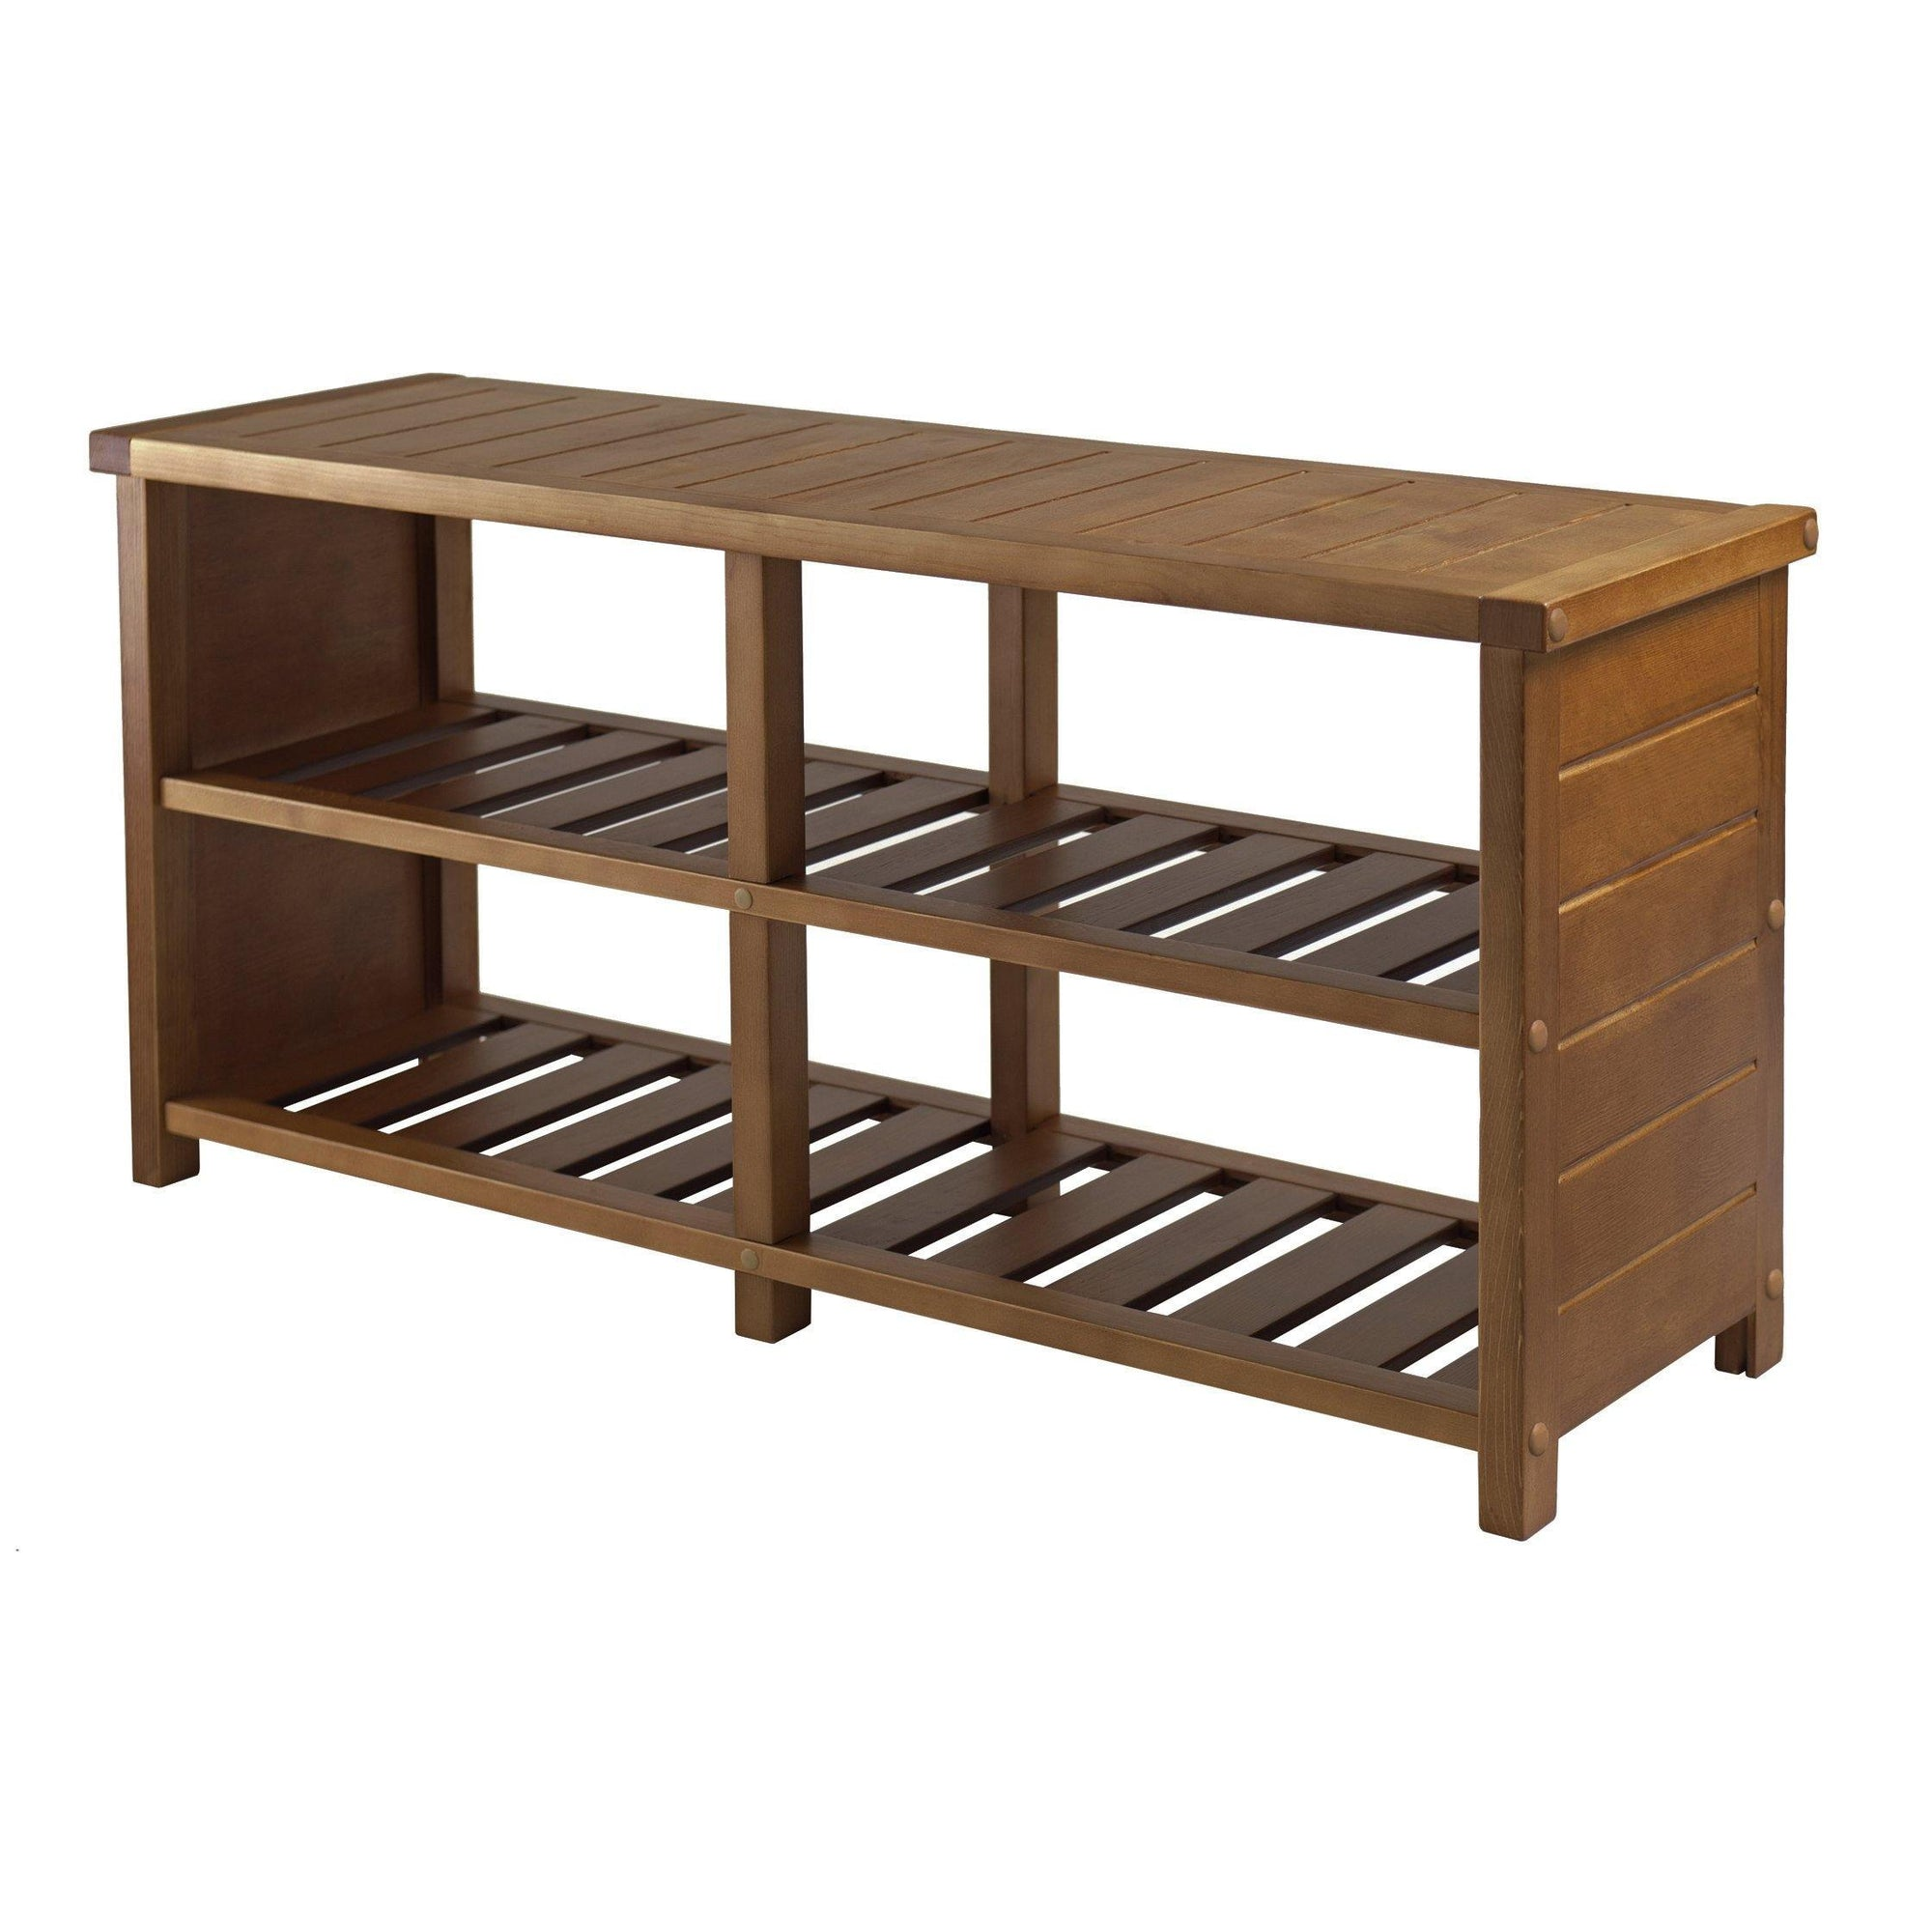 Keystone Bench, Shoe Storage, Teak Finish - My USA Furniture